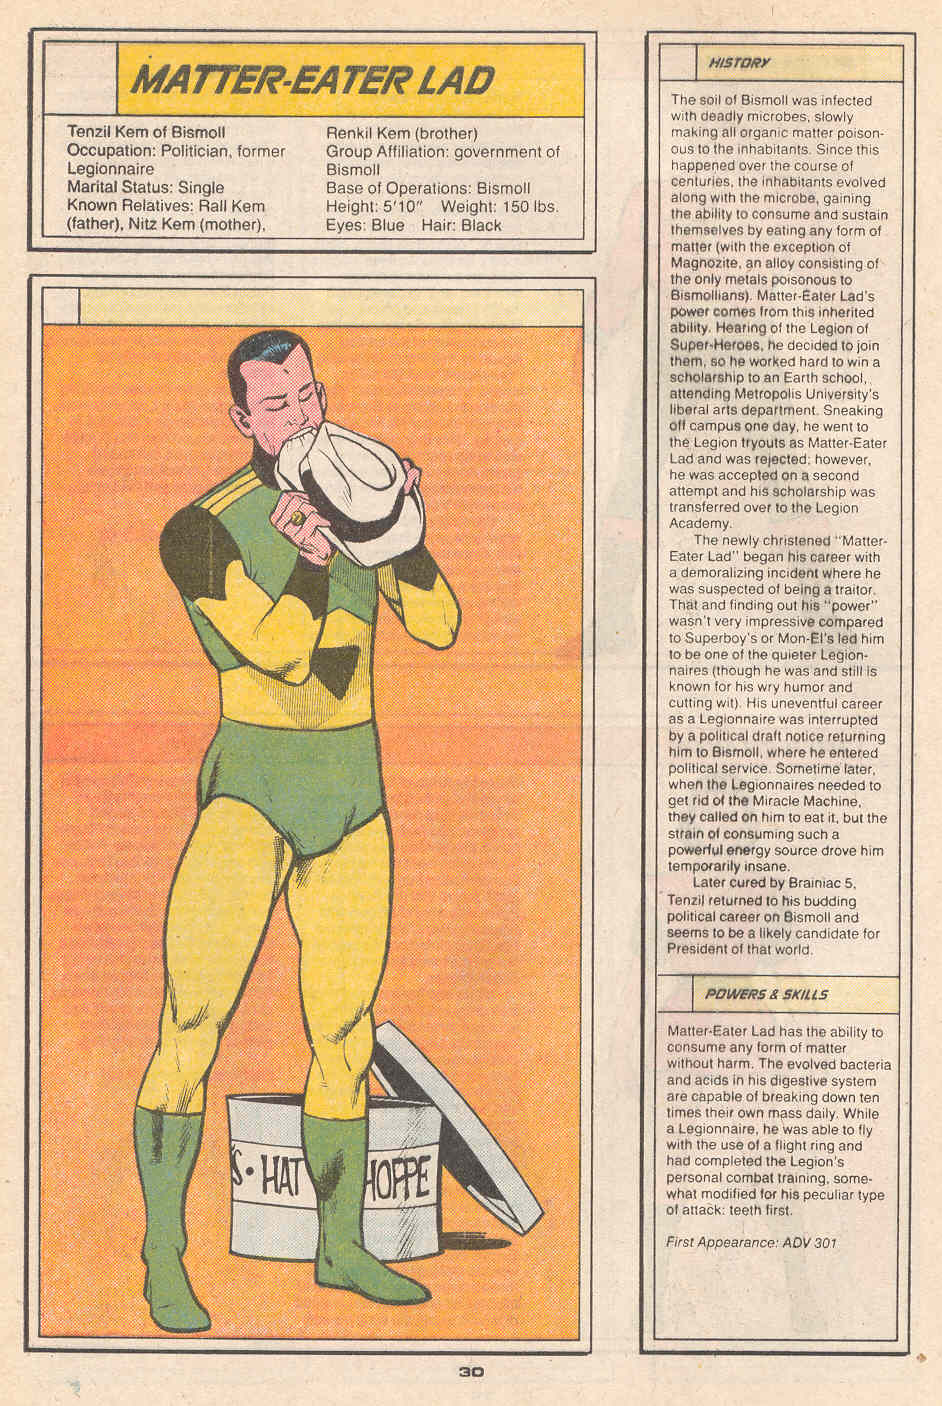 Matter-Eater Lad by Ty Templeton - Who's Who in the Legion of Super-Heroes #4